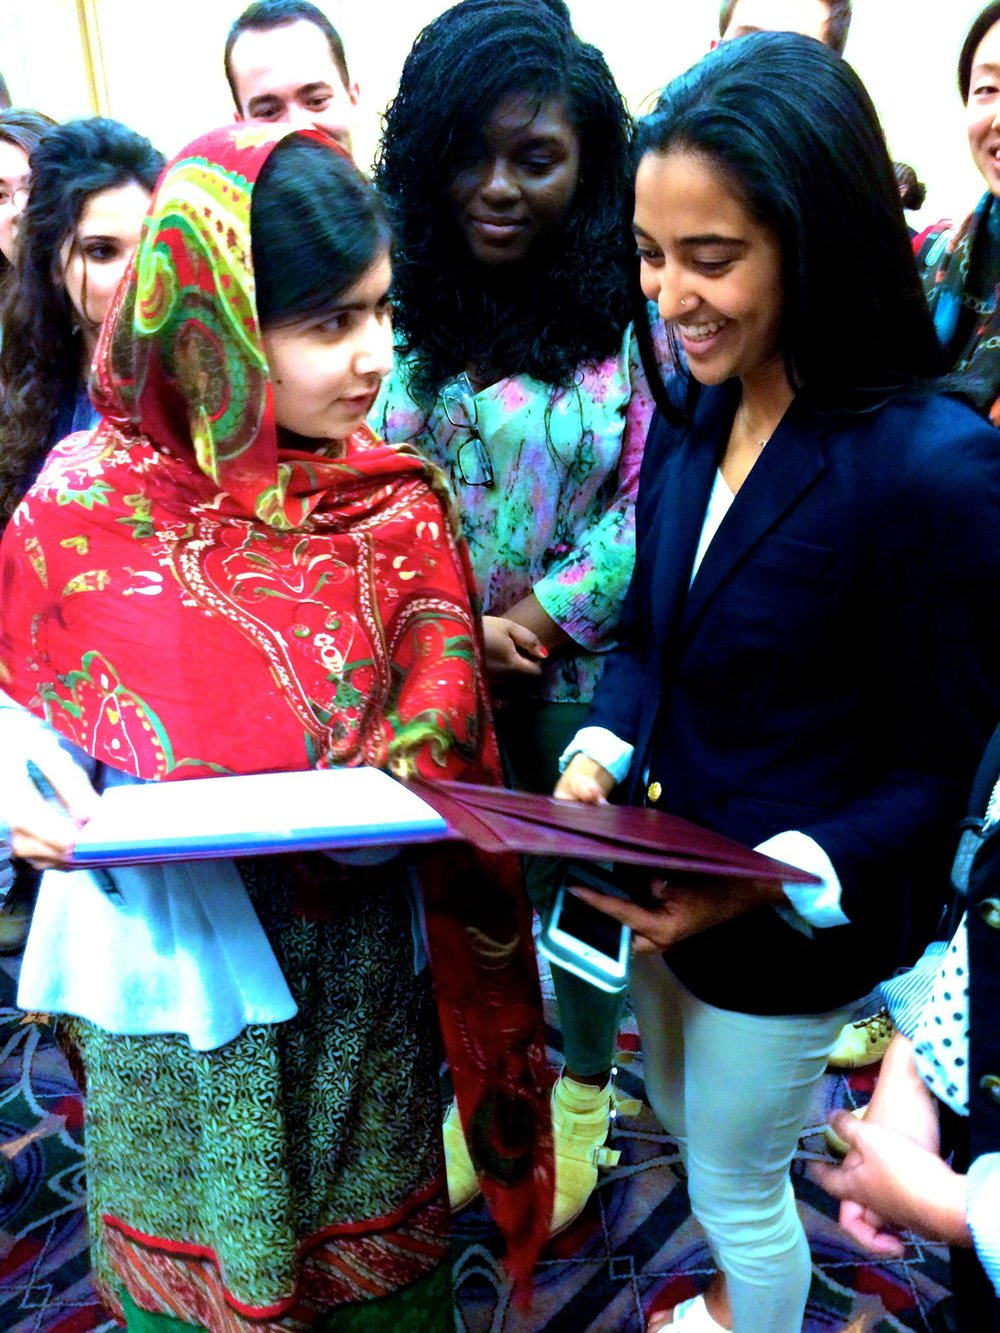 Bela meeting Malala Yousafzai at the PA Forbes 30 Under 30 Summit.